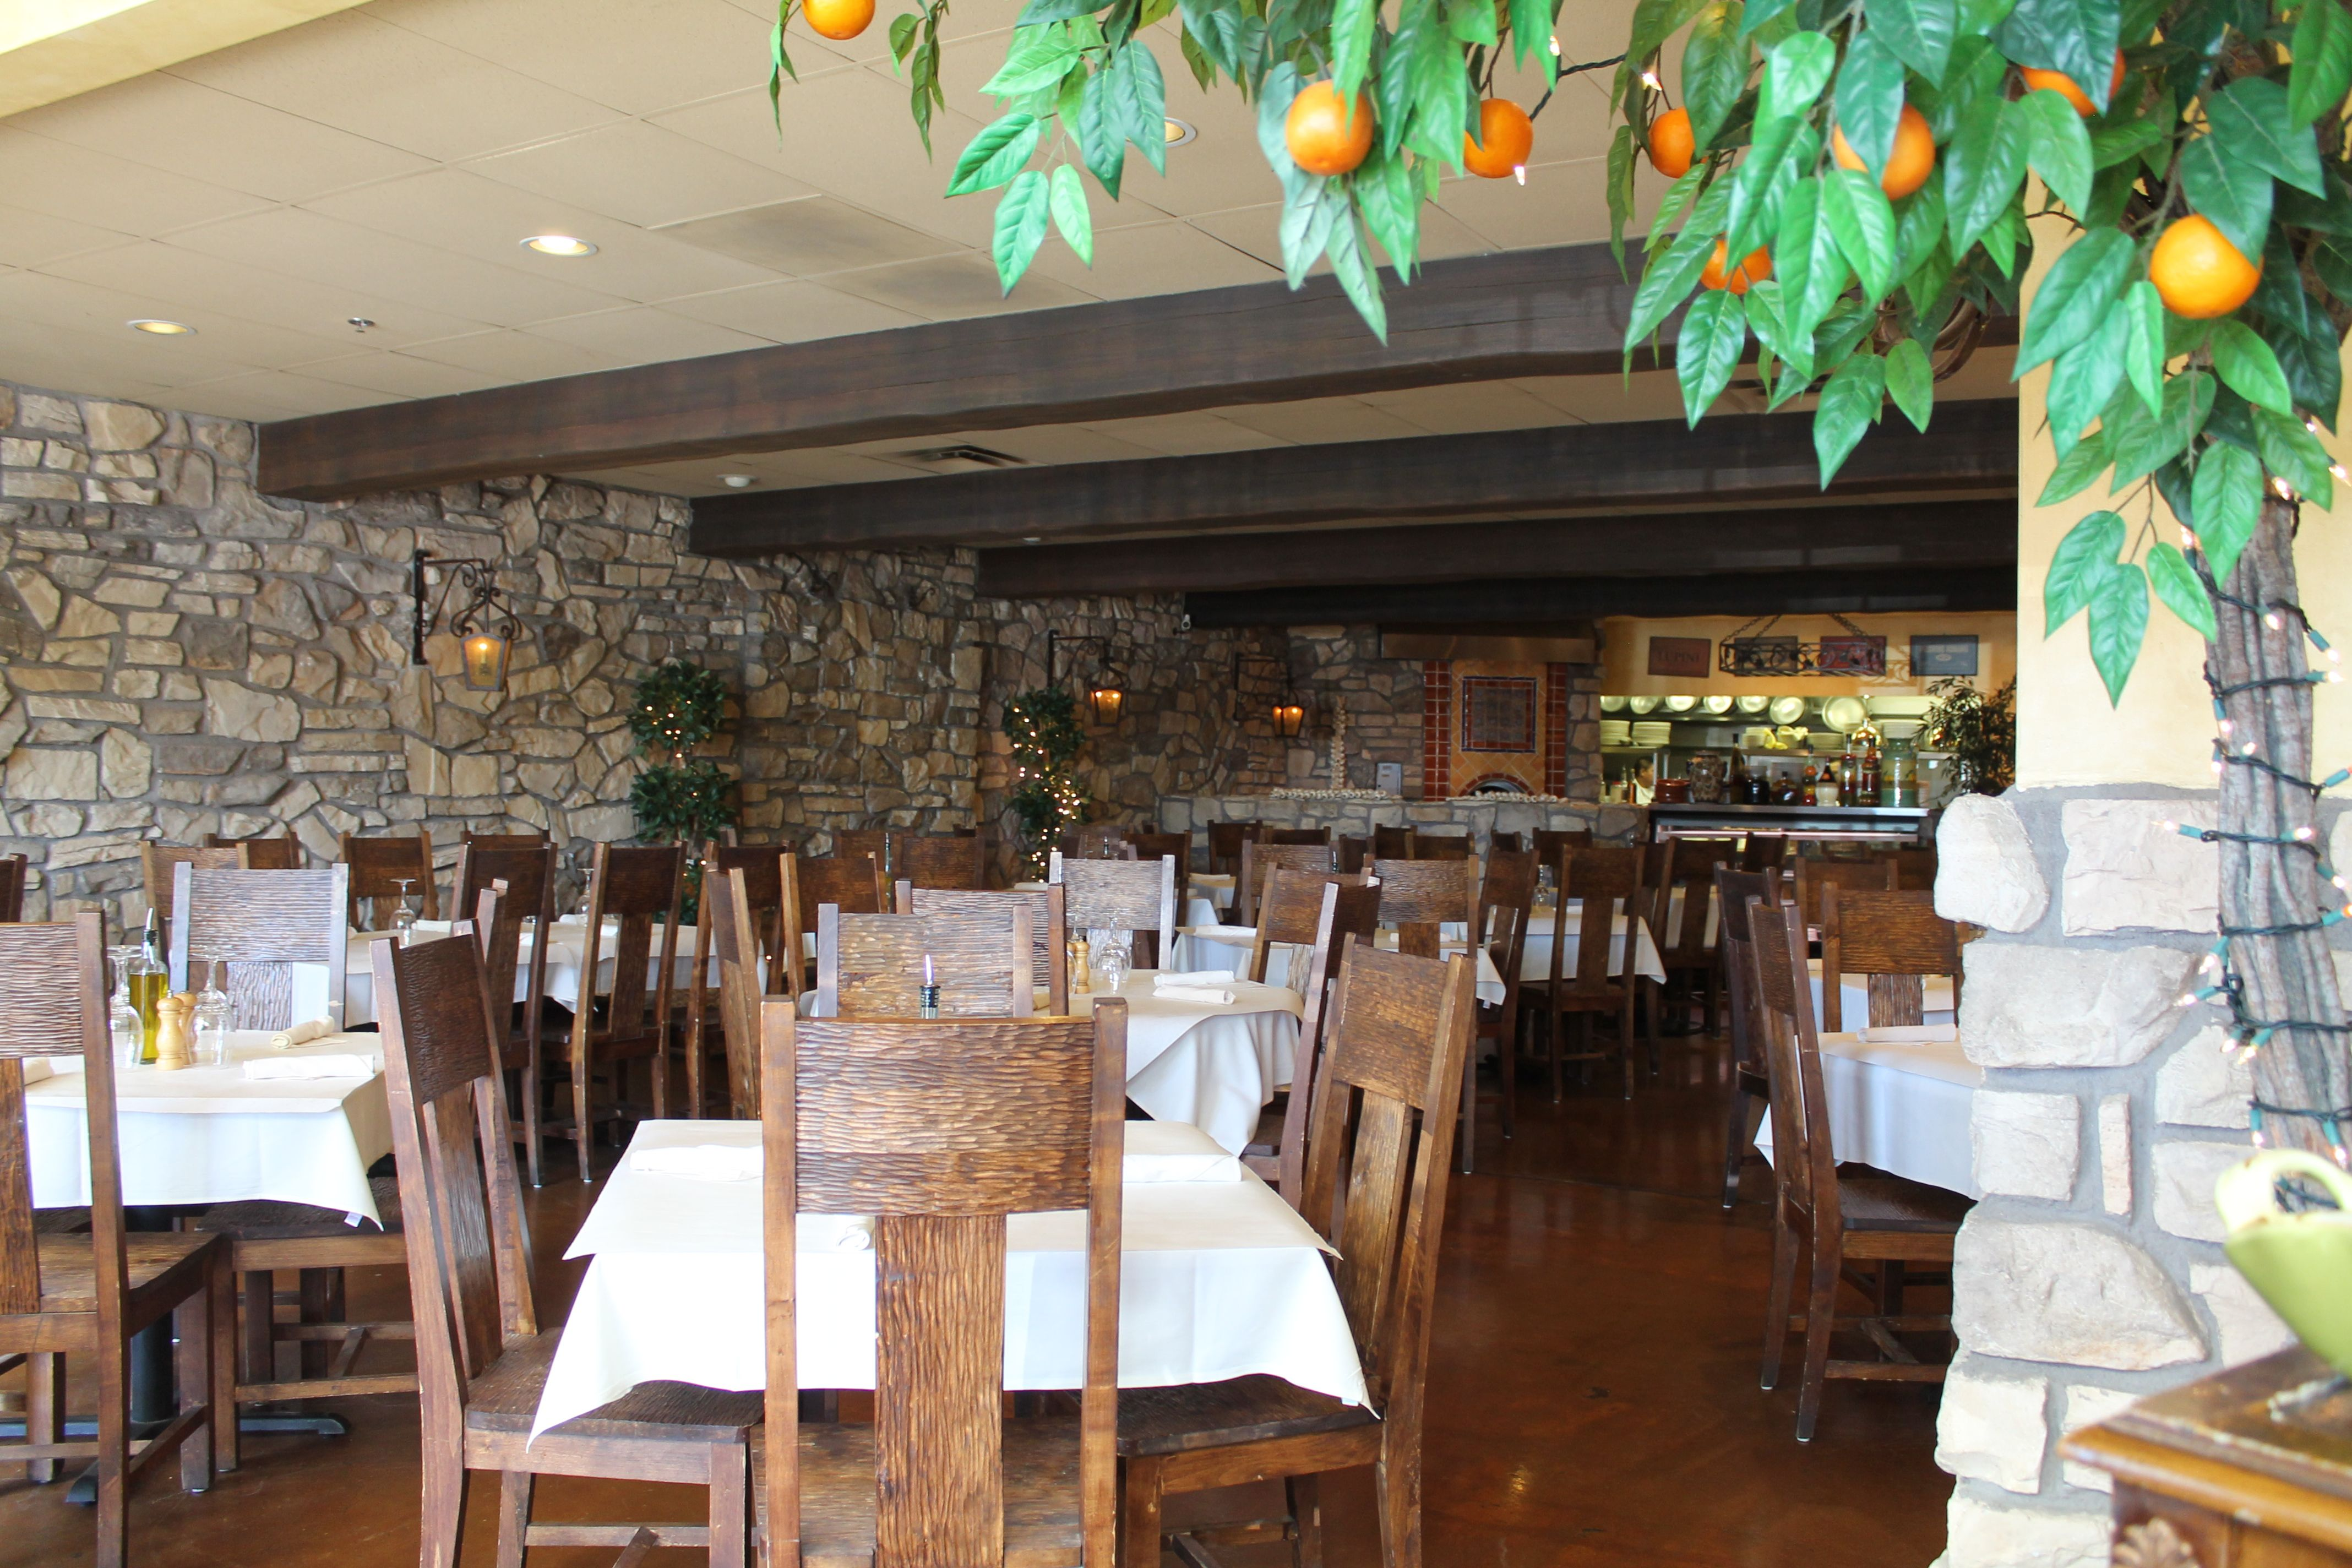 Cucina Rustica Prices Pin By Lisa Nonnenmacher On Restaurants Arizona Restaurant